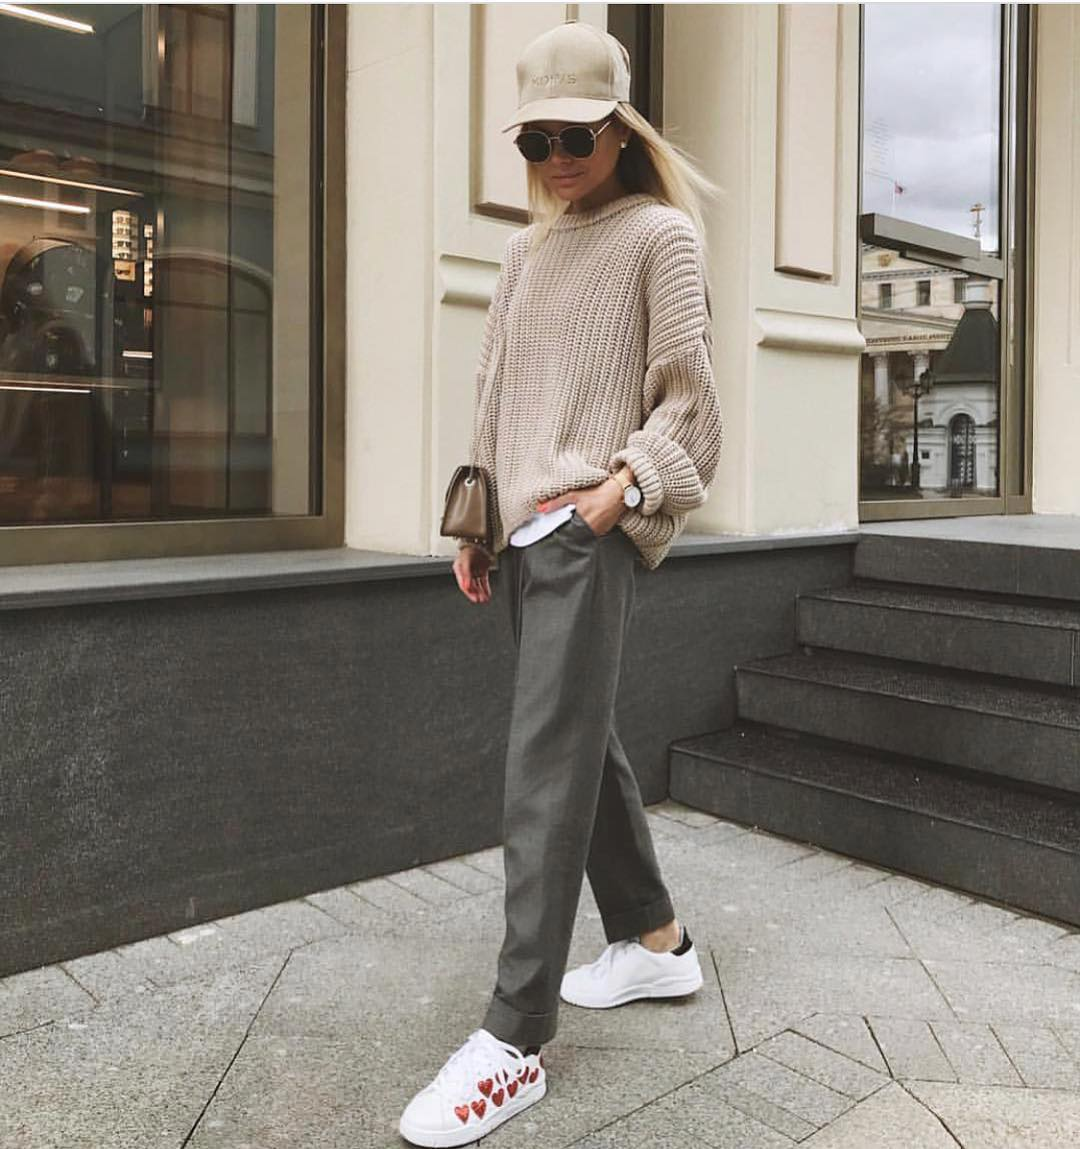 Fall Smart Street Style: Oversized Cream Sweater And Grey Pants With White Kicks 2020